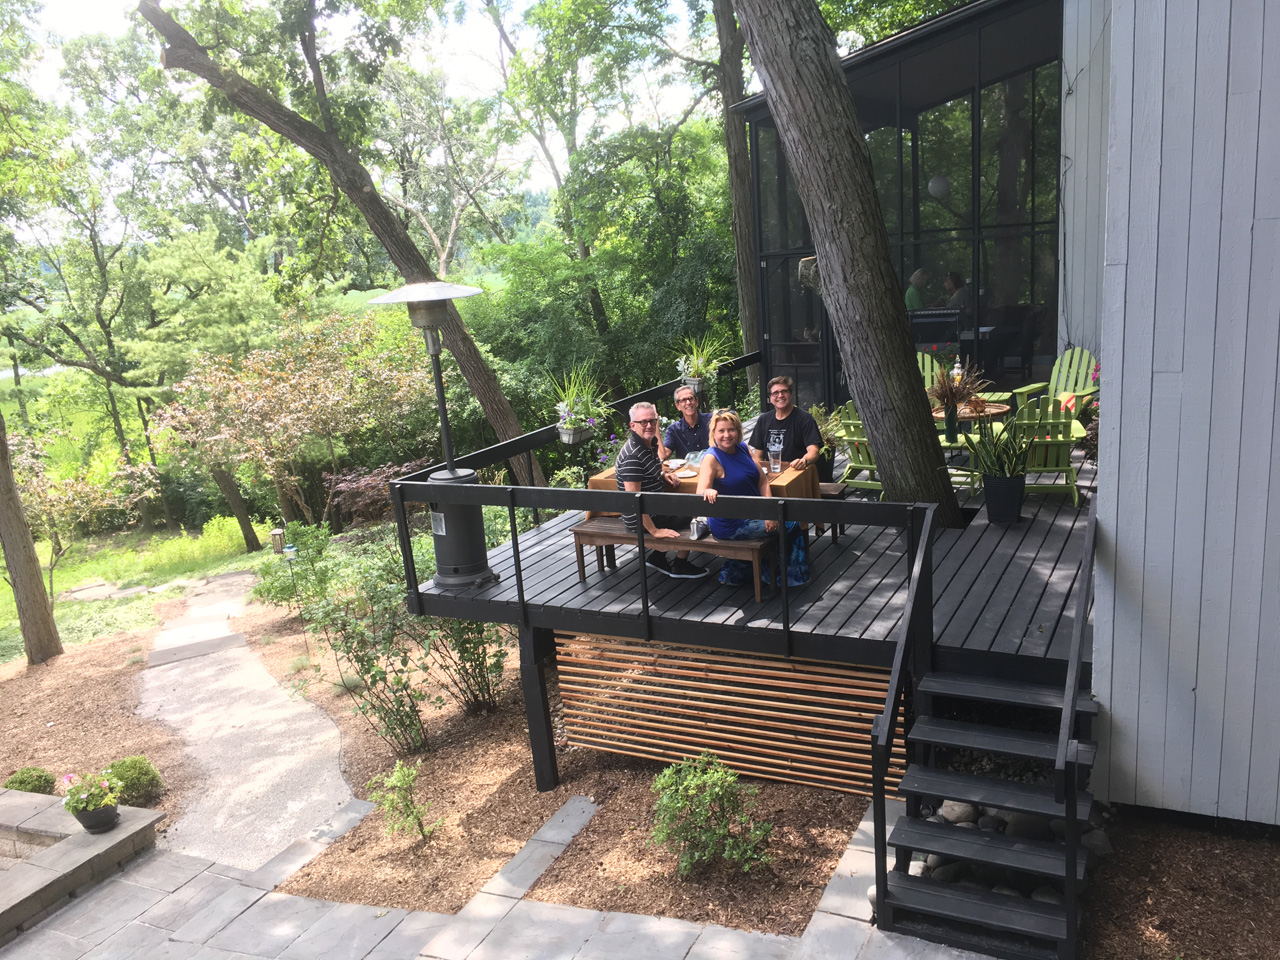 CBB members enjoy one of the many beautiful outdoor spaces